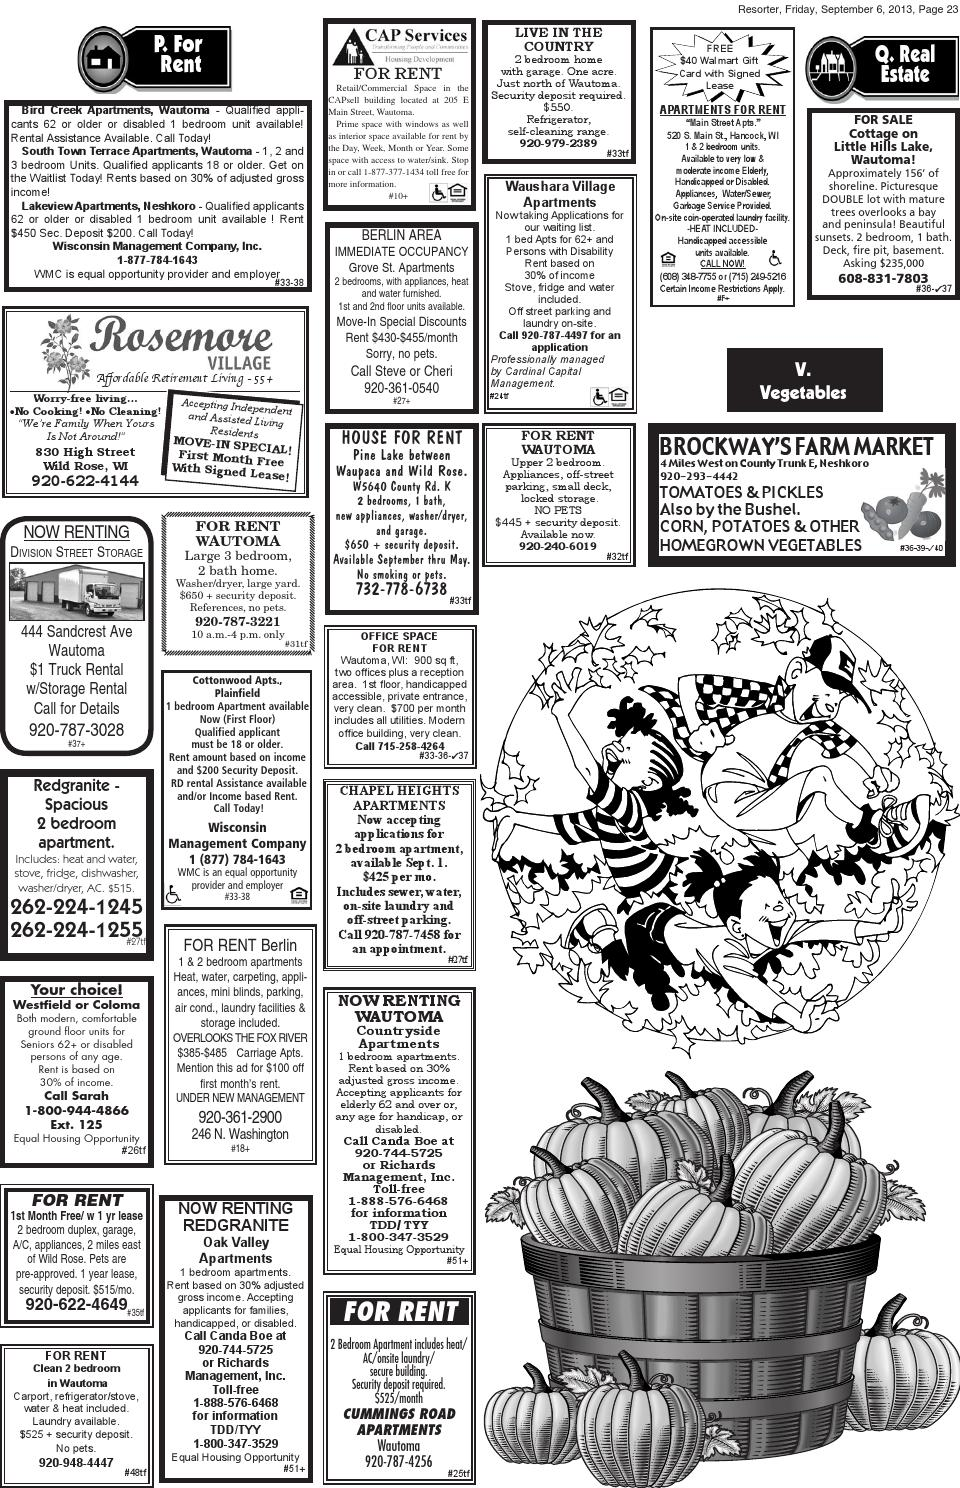 Central Wisconsin Resorter 2013 No  36 by Wautoma Newspapers - issuu